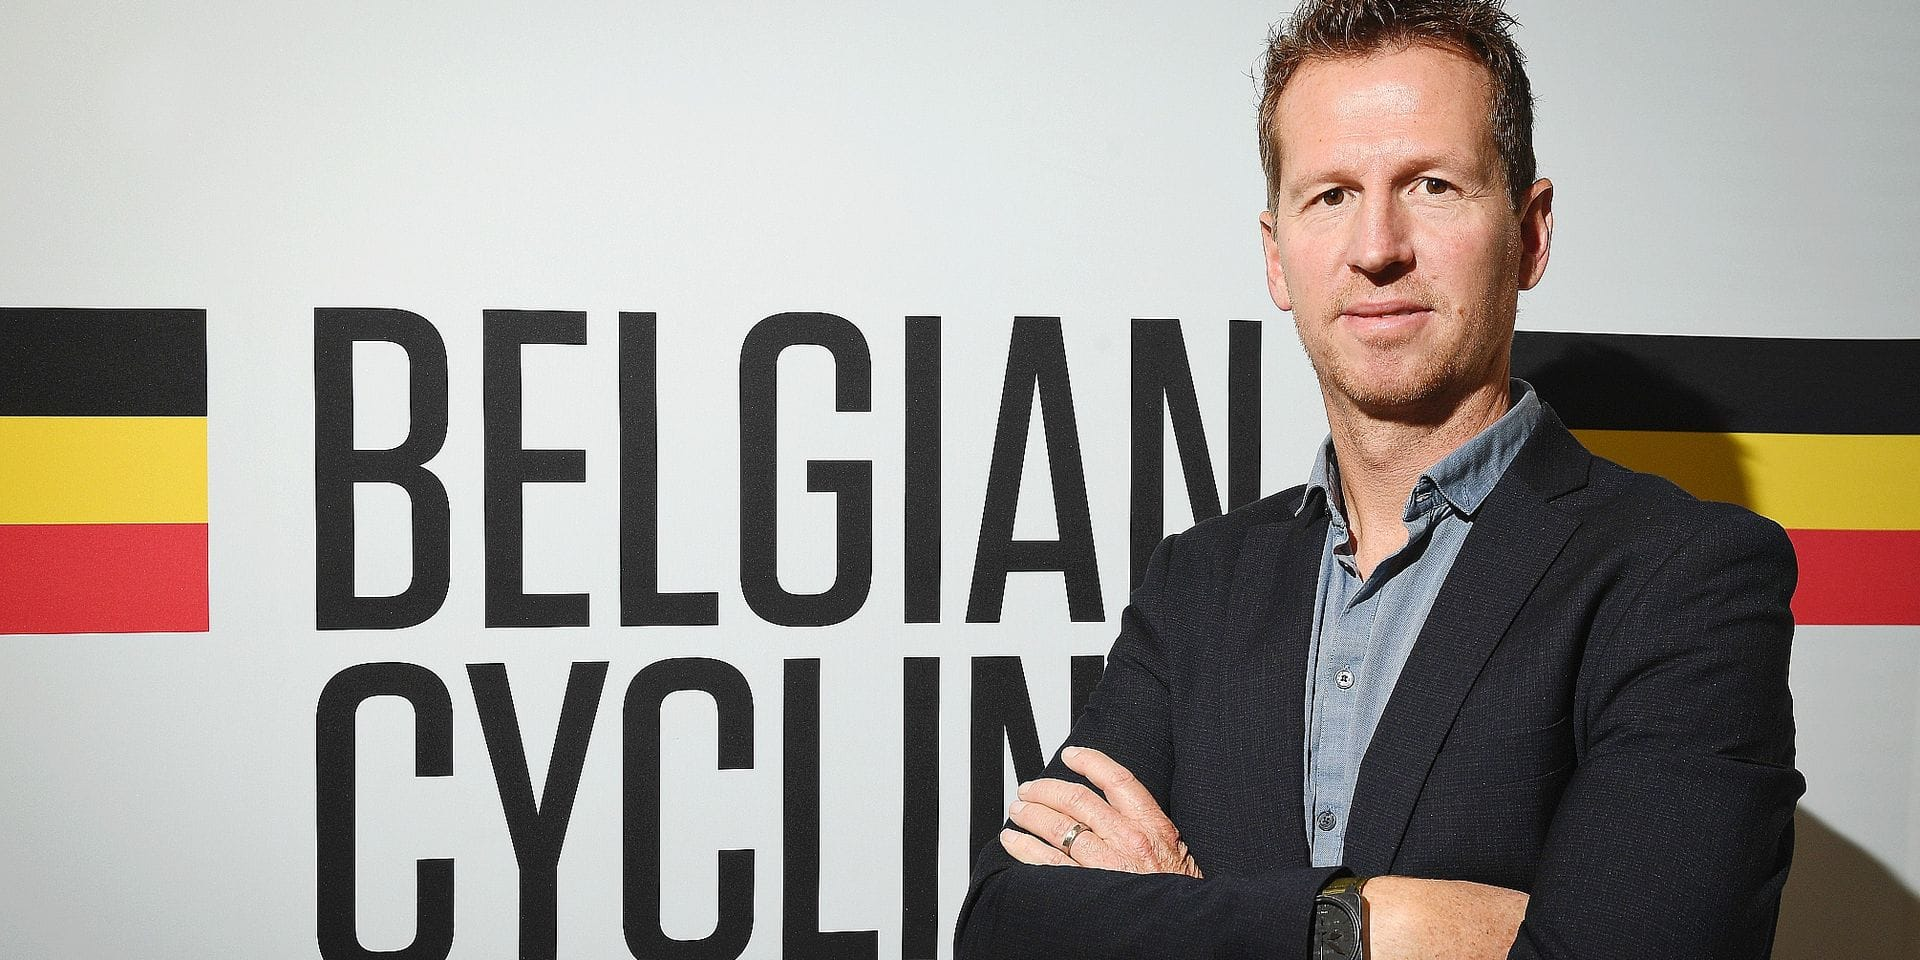 Rik Verbrugghe poses for the photographer during a press conference to present the new Belgian federal cycling coach for the elite and U23 men, at the Royal Cycling Association headquarters in Brussels, Thursday 08 November 2018. BELGA PHOTO DAVID STOCKMAN